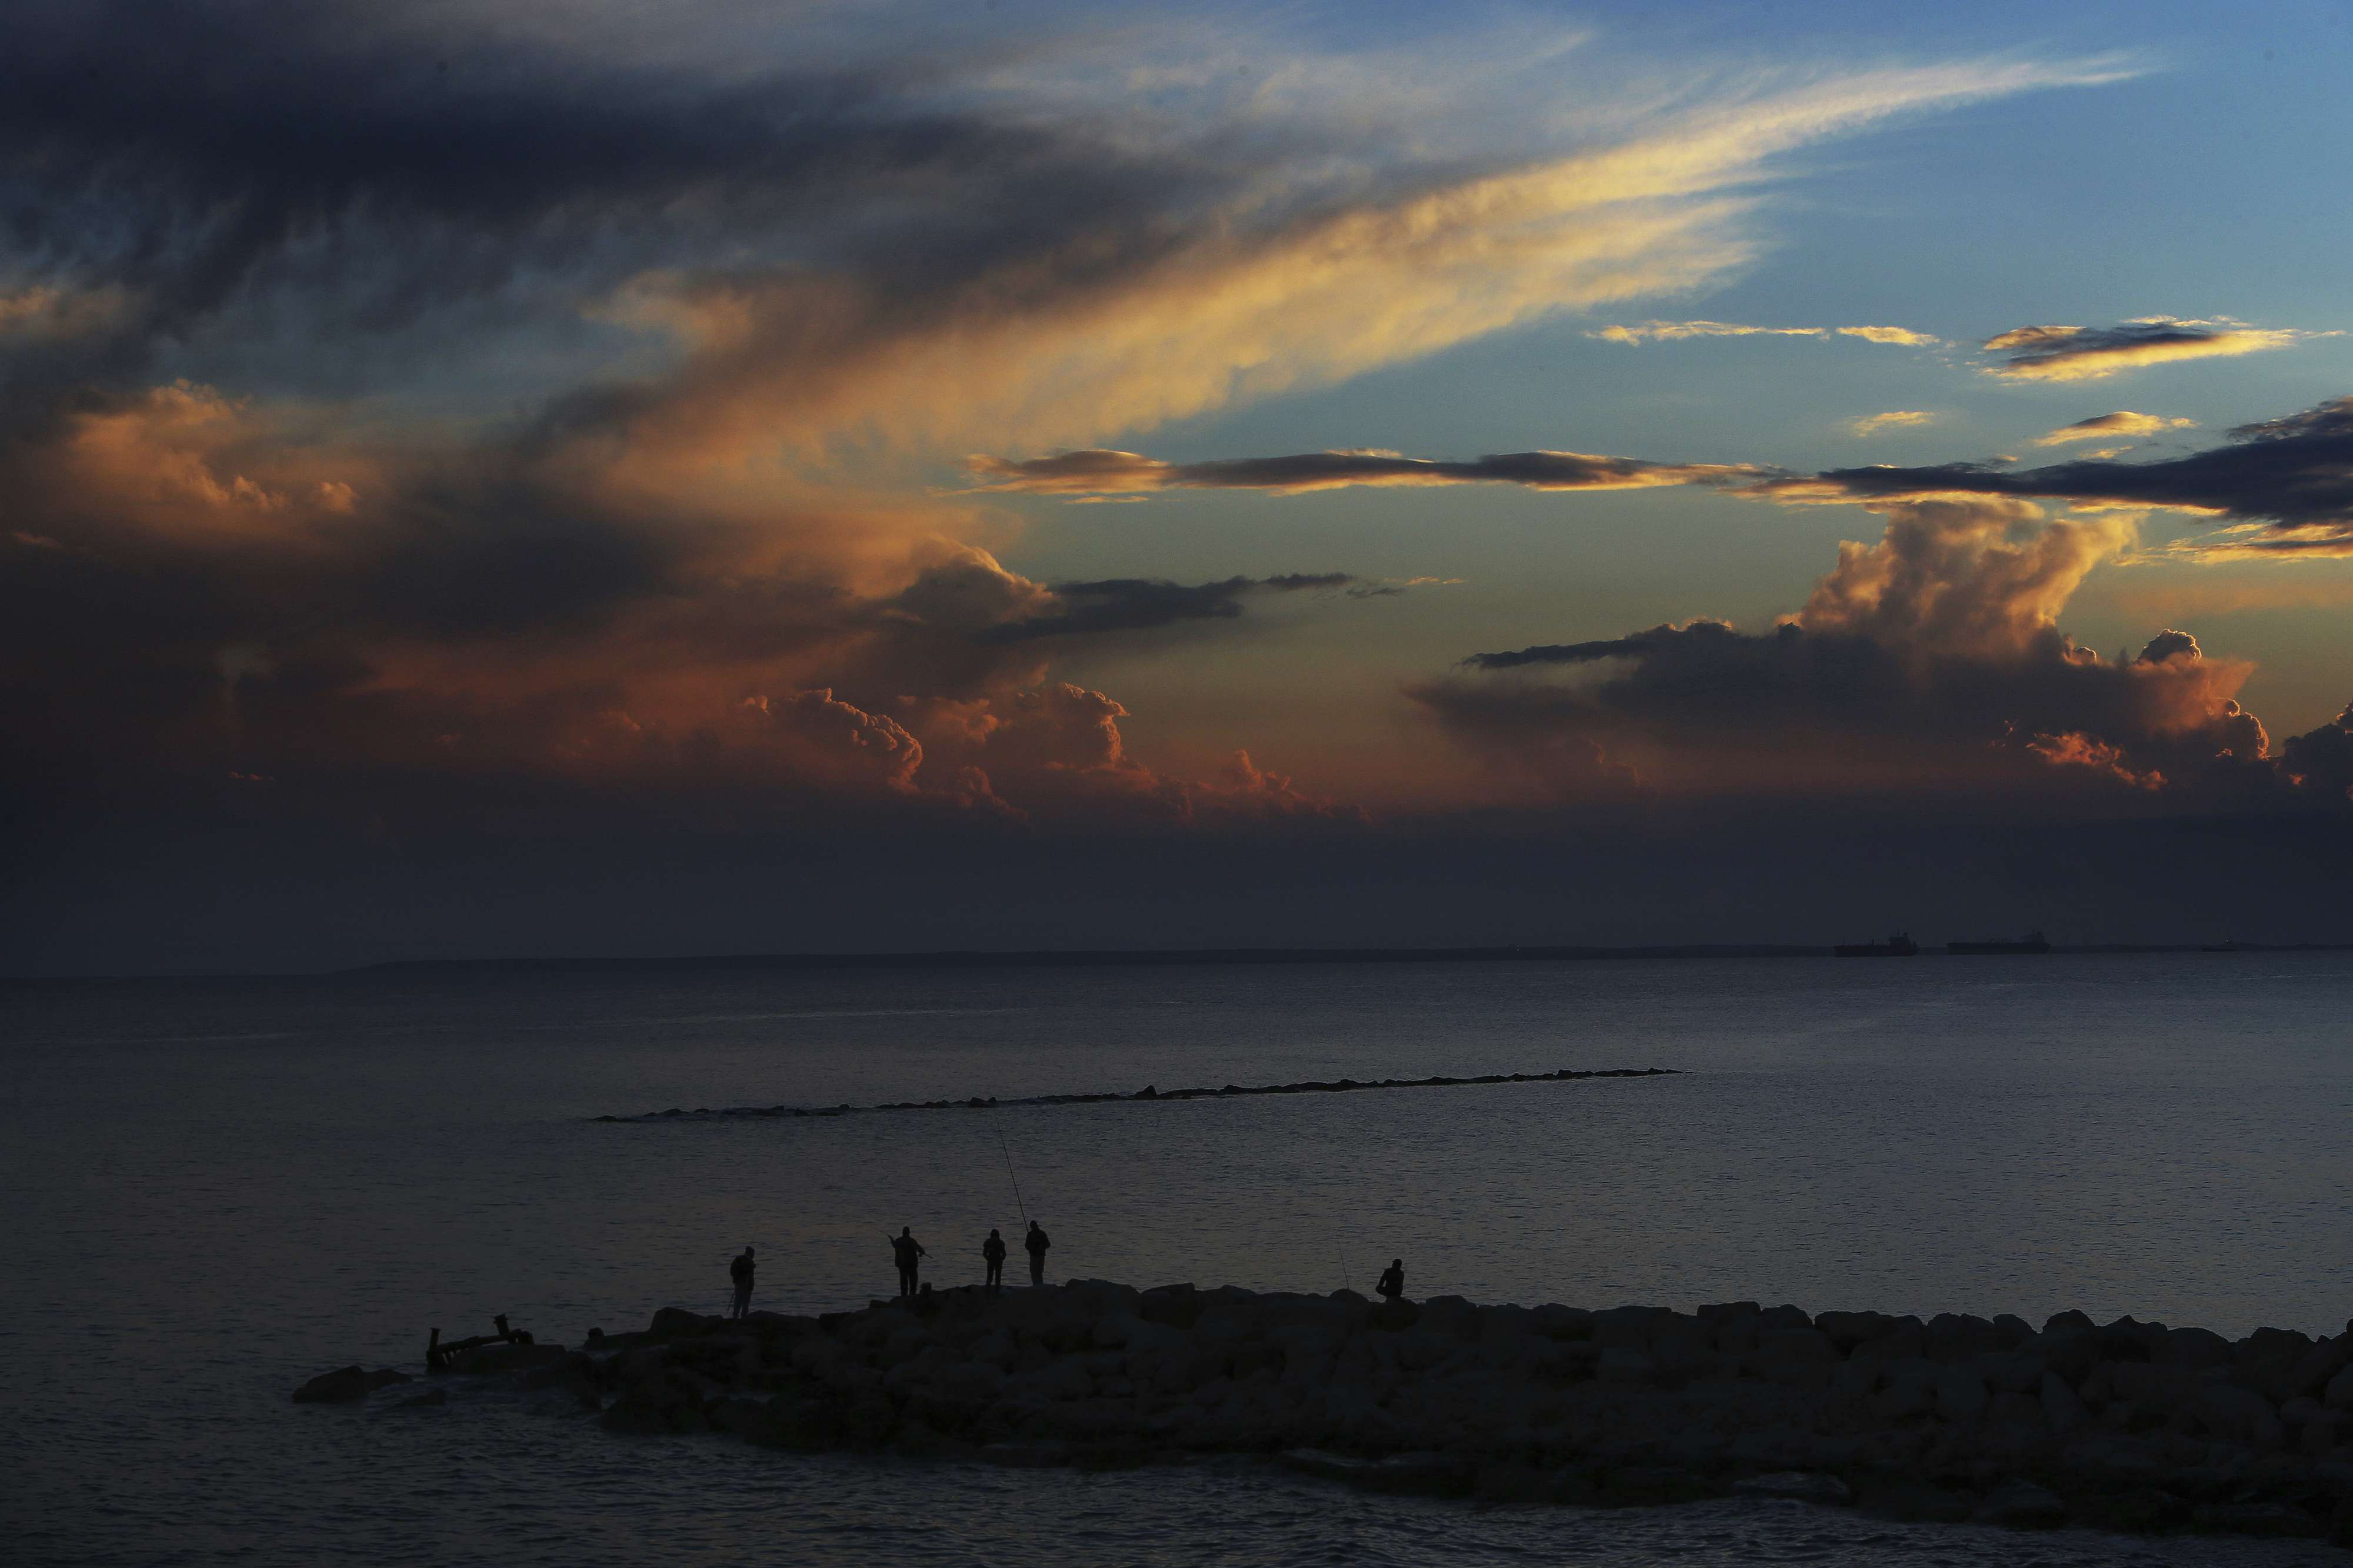 Men fishing with their fishing rods at the sea during a sunset in the southern port city of Limassol, Cyprus, Friday, Feb. 23, 2018.